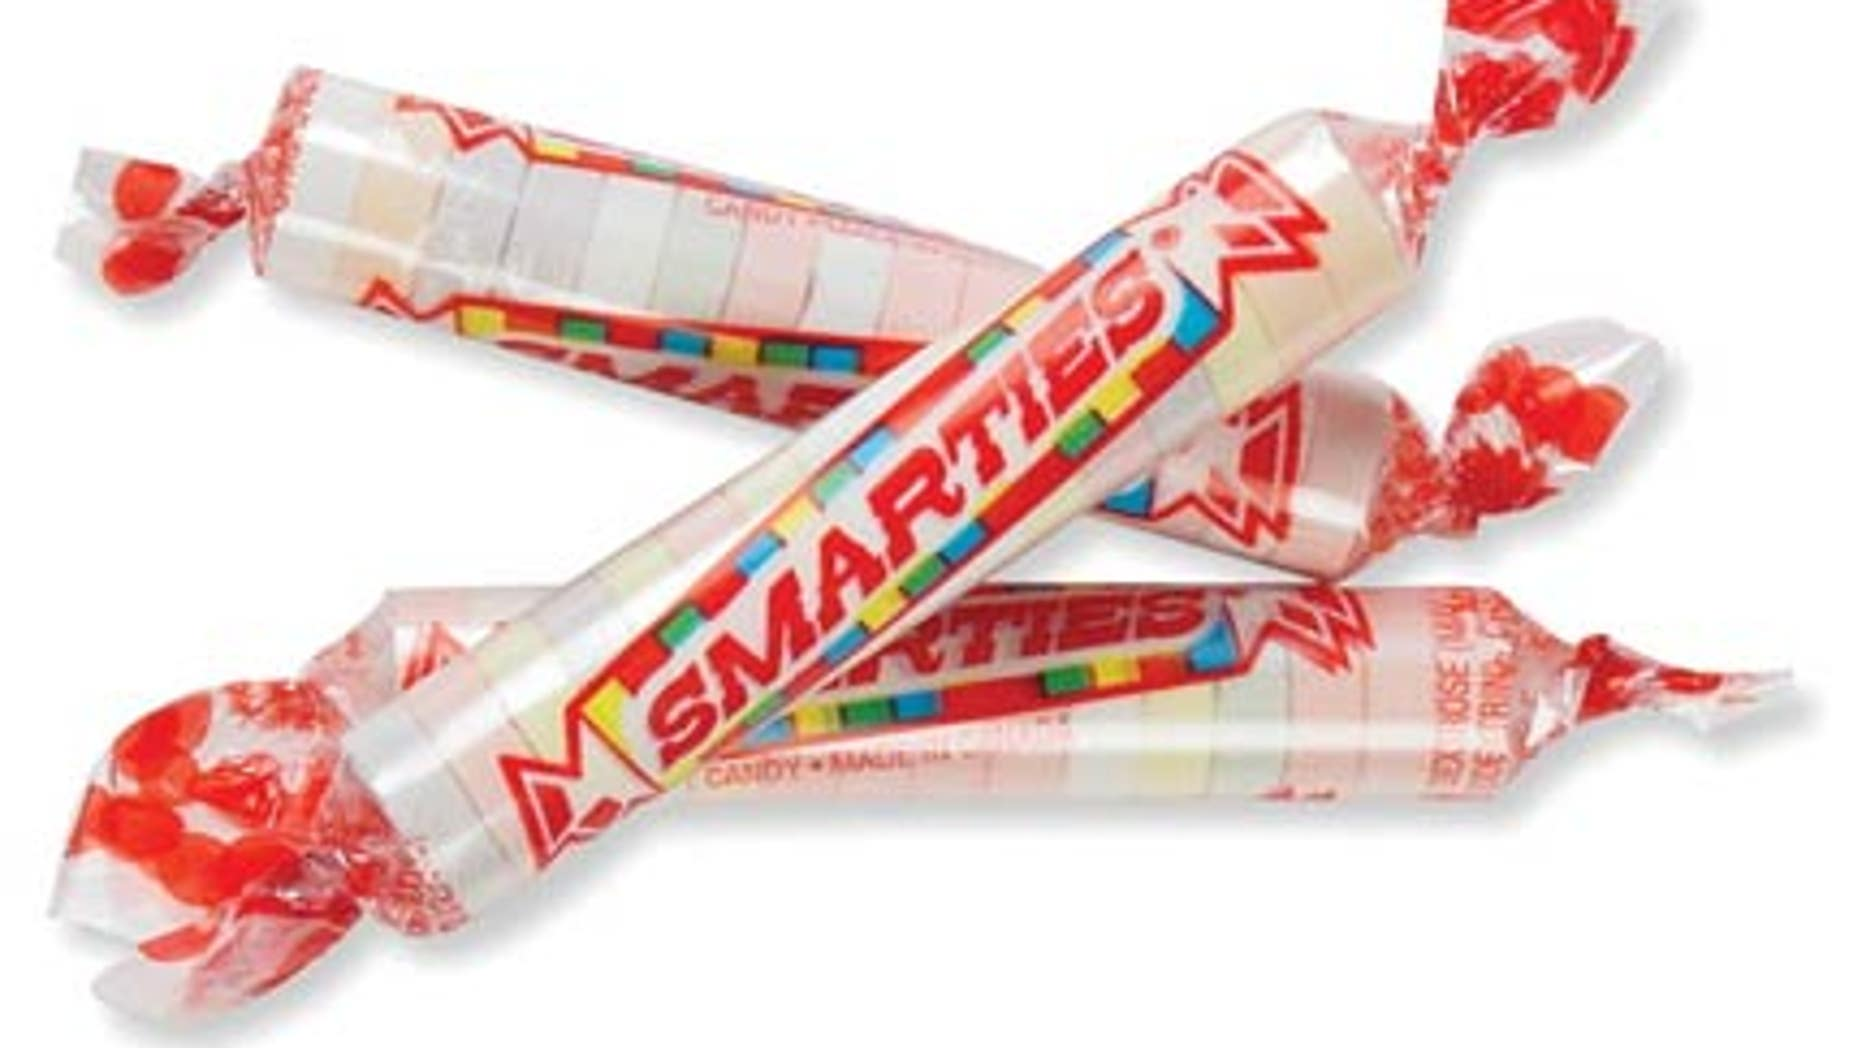 More Students Caught Snorting Smarties Candy